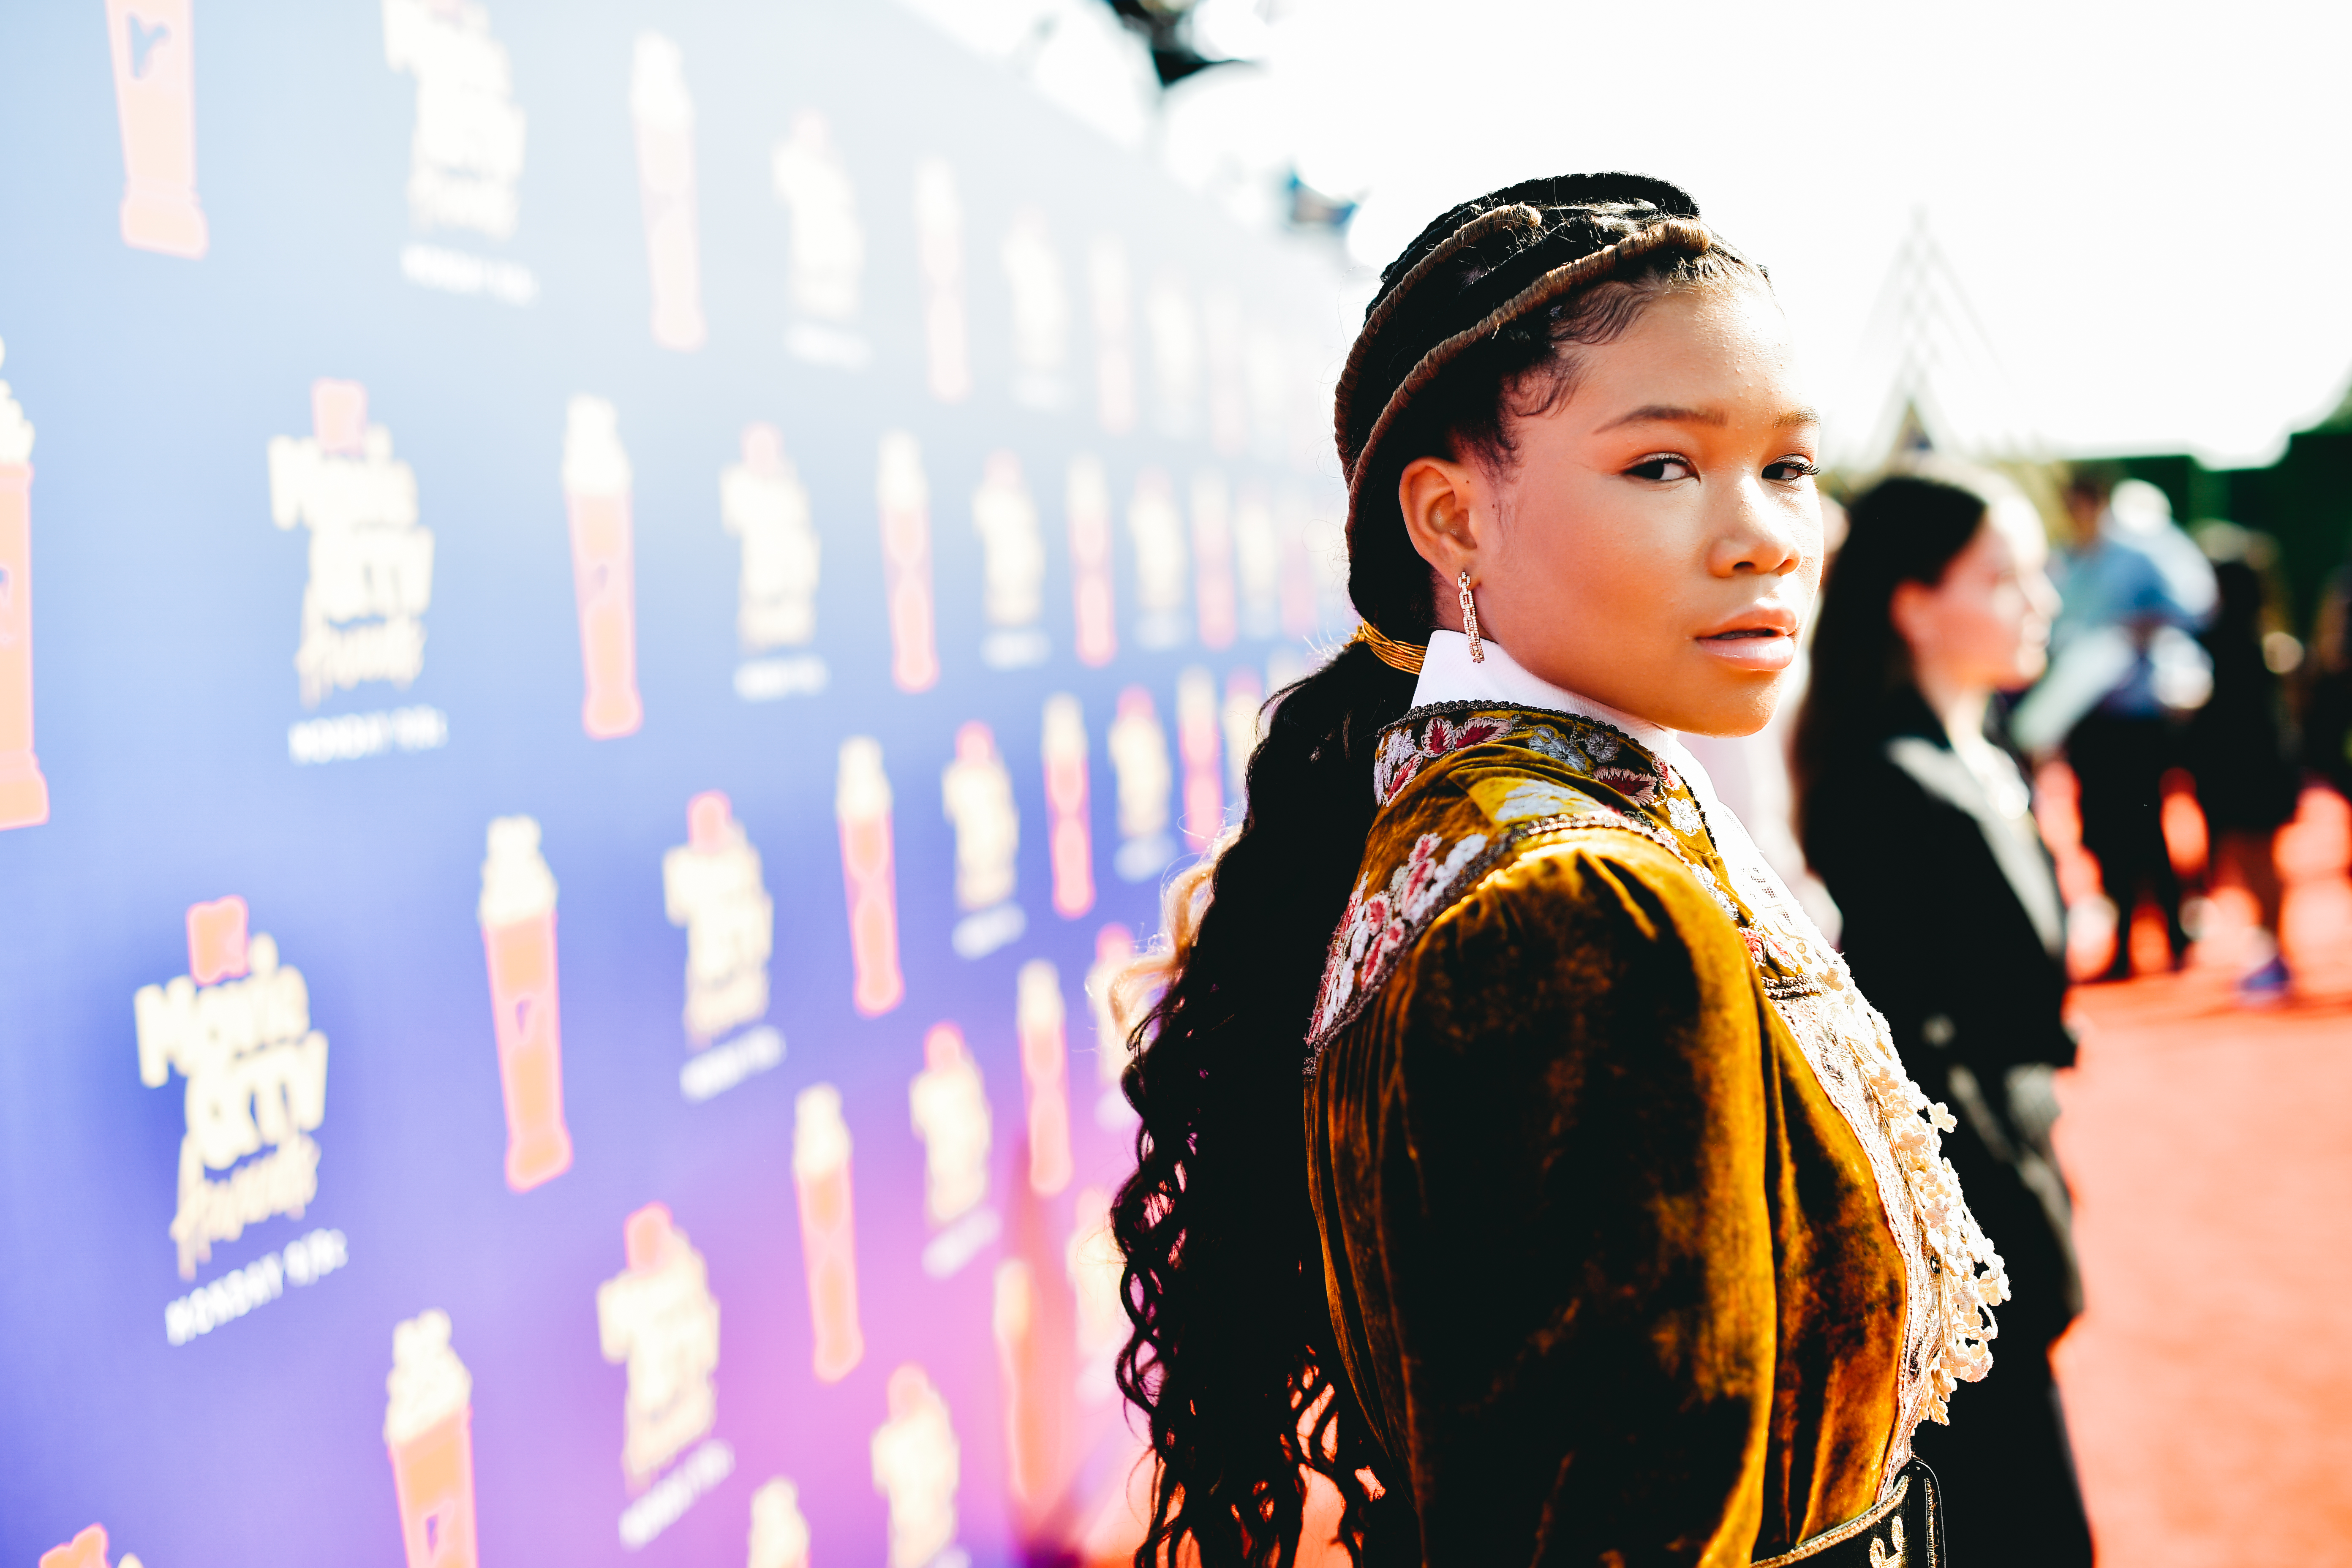 SANTA MONICA, CALIFORNIA - JUNE 15: (EDITORS NOTE: Image has been processed using digital filters) Storm Reid attends the 2019 MTV Movie and TV Awards at Barker Hangar on June 15, 2019 in Santa Monica, California. (Photo by Matt Winkelmeyer/Getty Images for MTV)